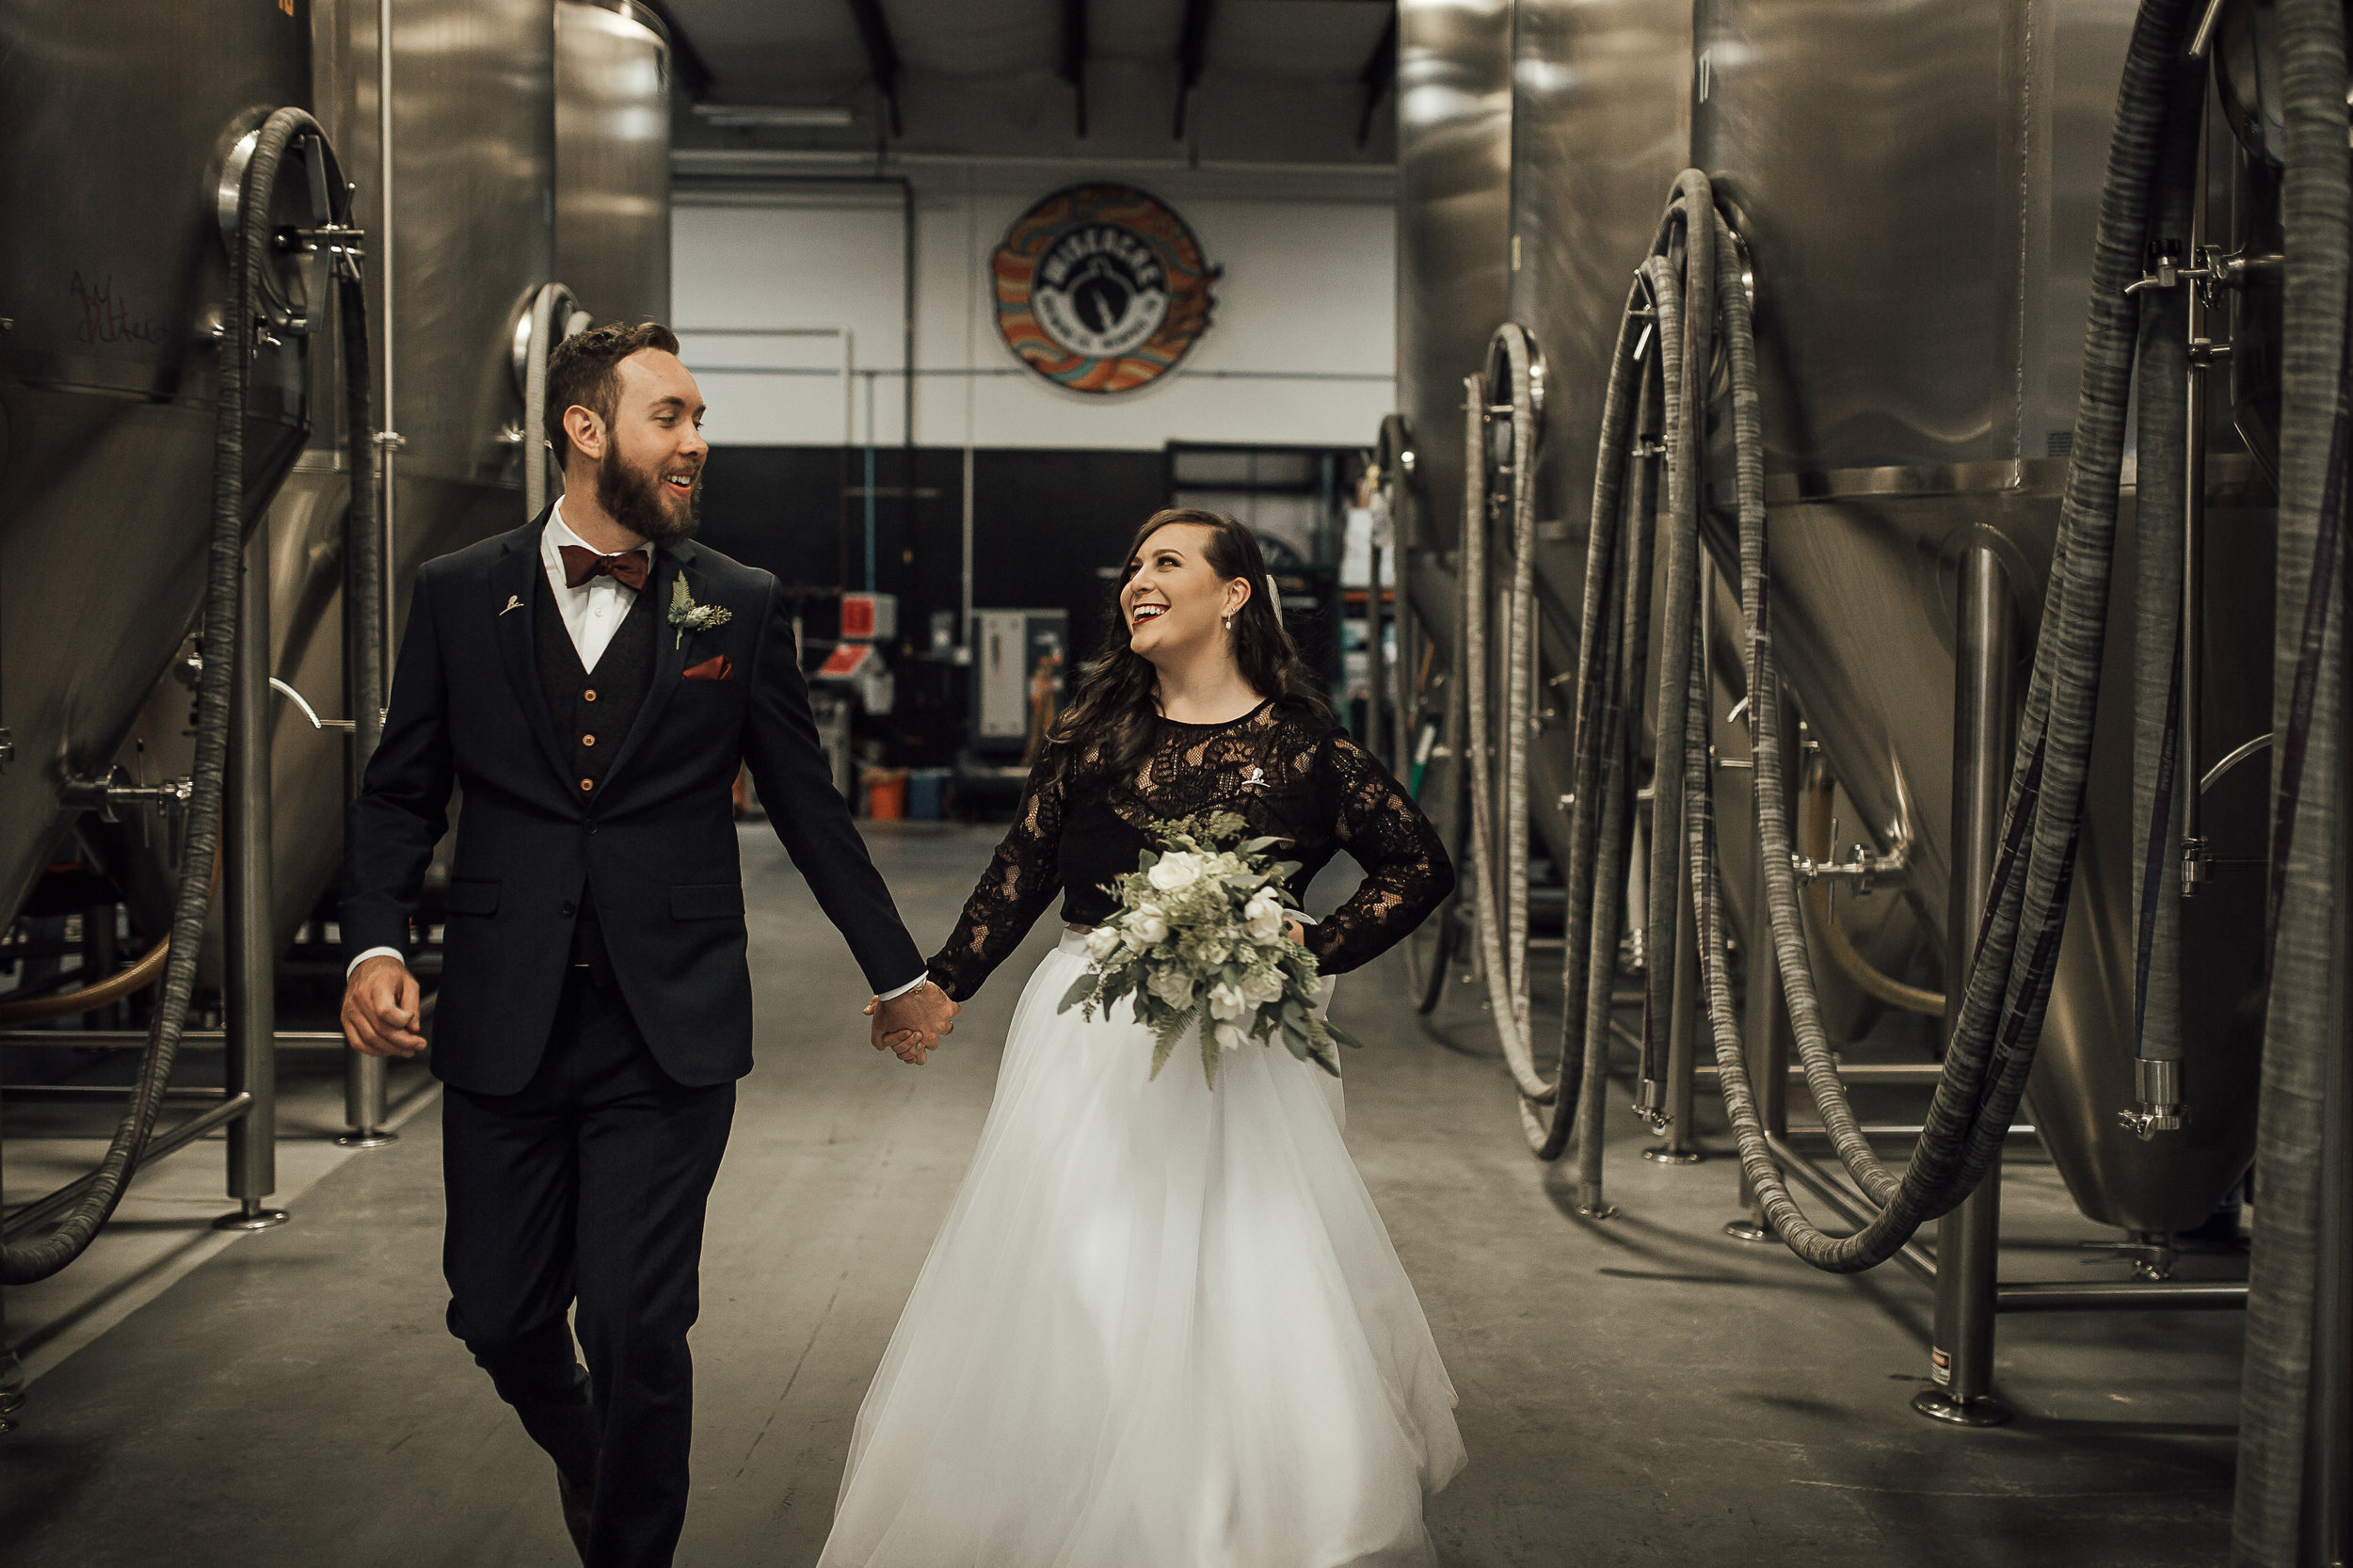 memphis-wedding-photographer-wiseacre-brewing-cassie-cook-photography-41.jpg